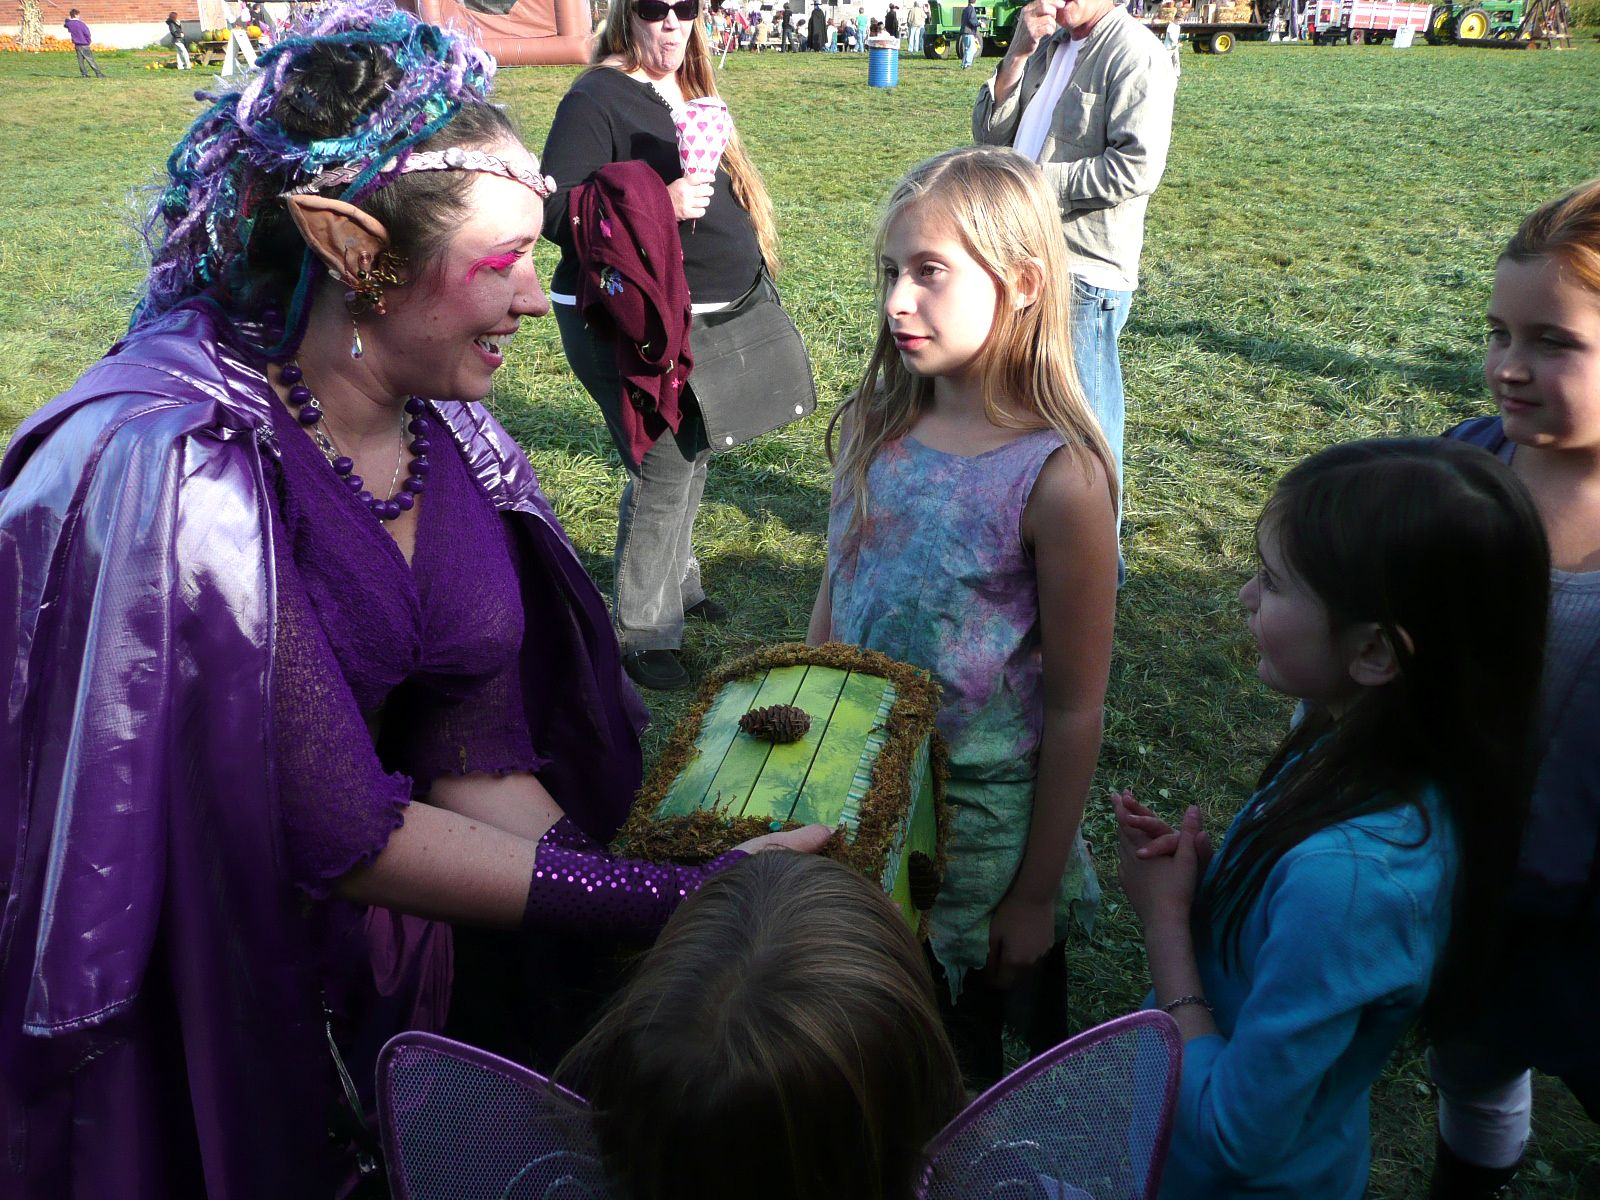 (9) Meanwhile, a host of spritelings amongst faerie court quite capably flustered and befuddled the distracted pirates.  They found the magic acorn and put stored it safely in Princess Lolly's dross box...